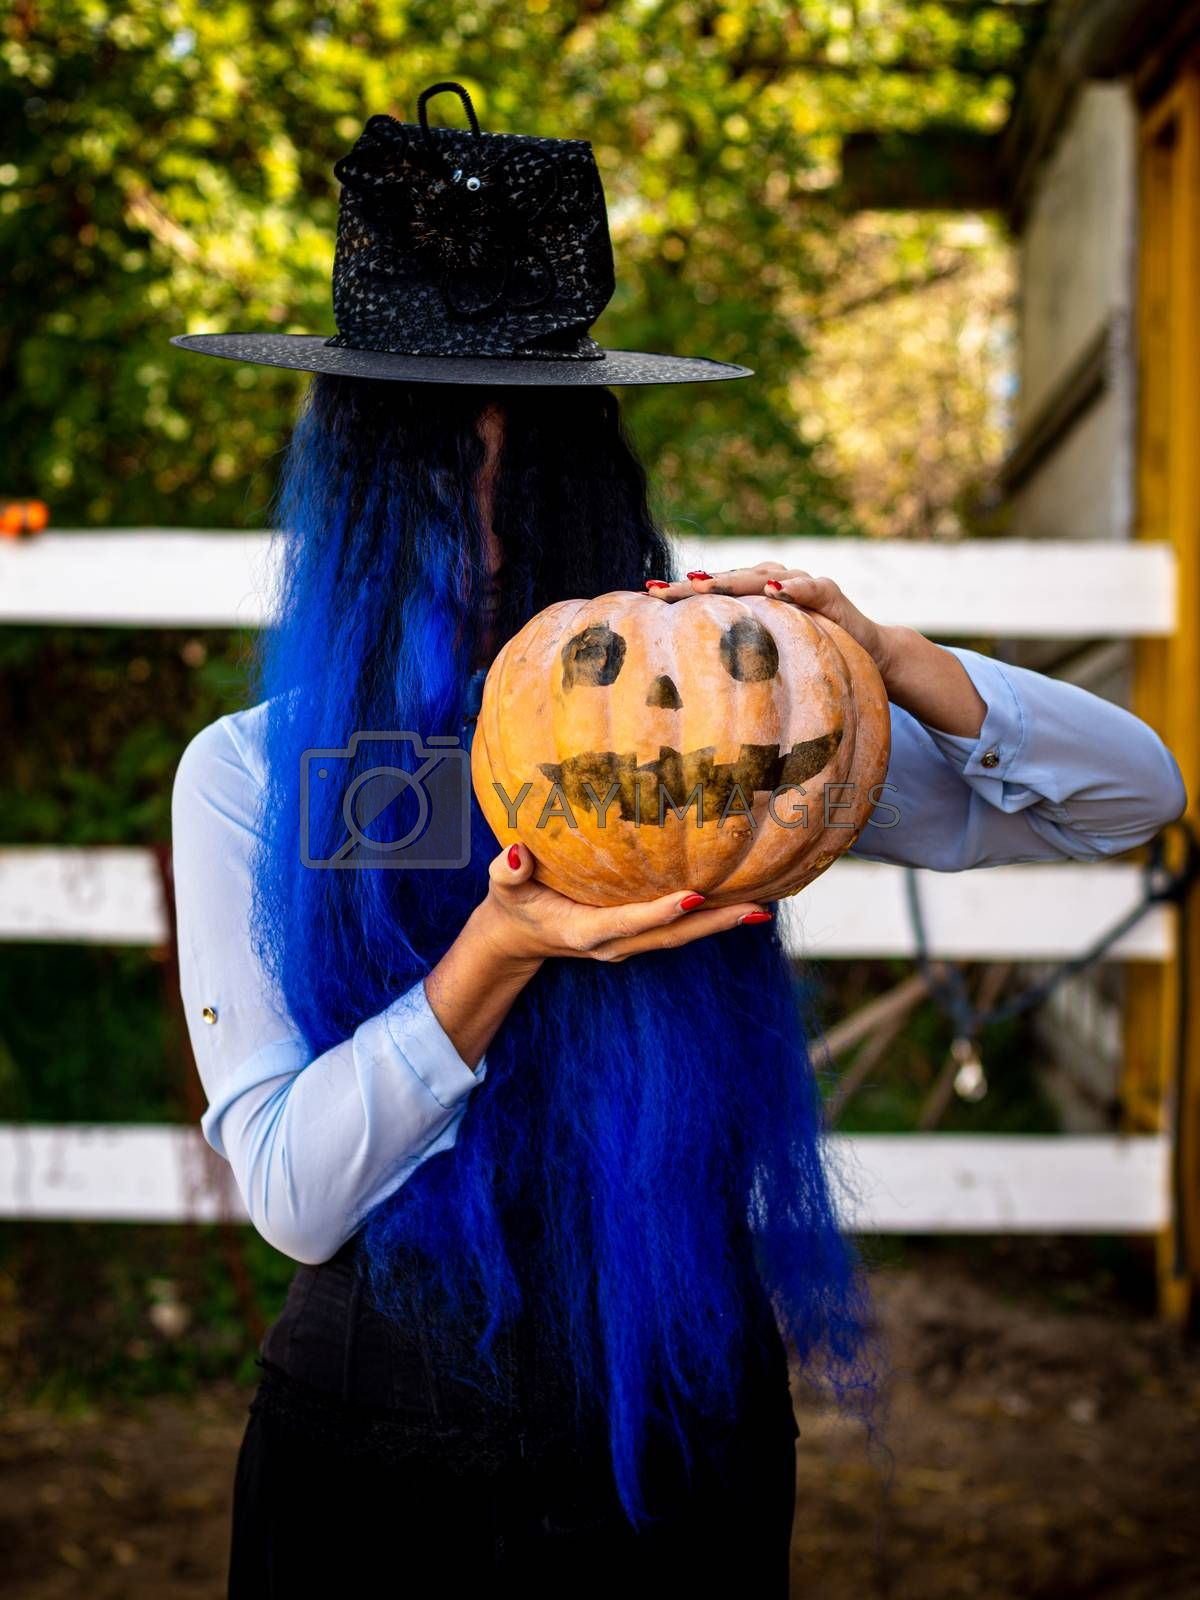 A girl with her hair covered face in a witch costume is holding a pumpkin with a painted face and a witch's cap